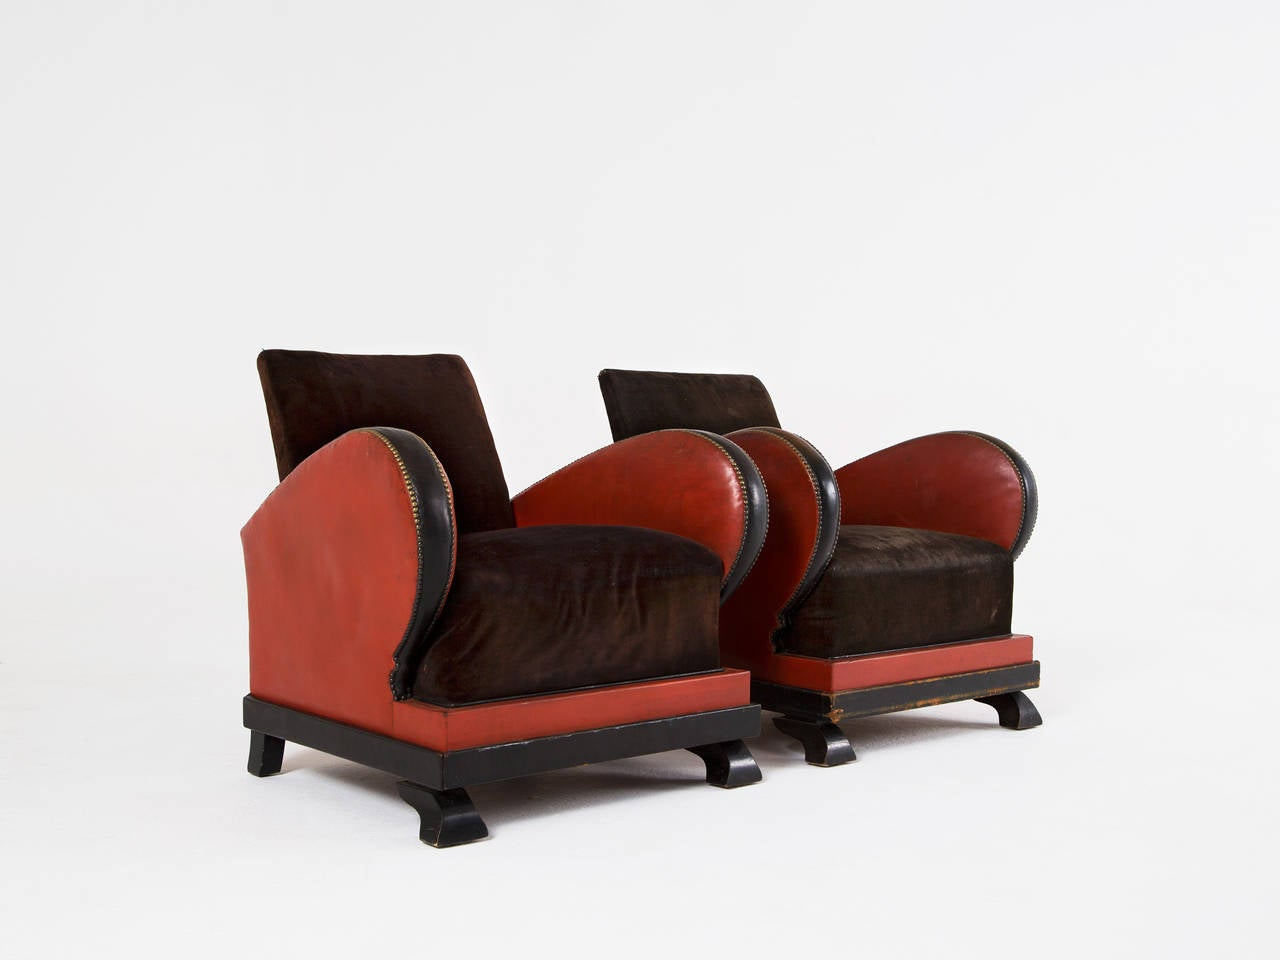 Set of 2 Red and Black Art Deco Club Chairs For Sale at ...